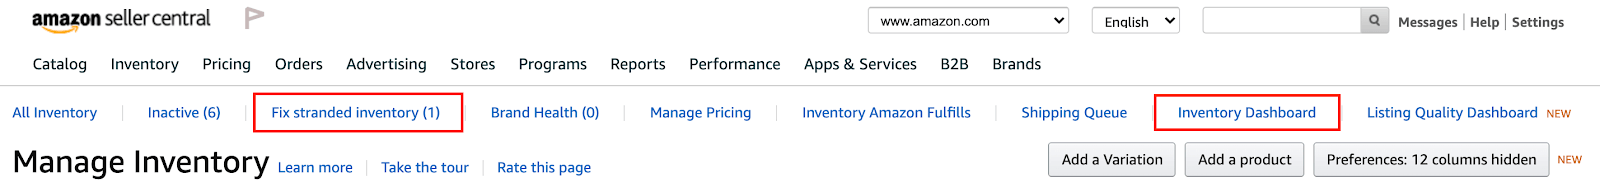 Amazon stranded inventory: inventory dashboard